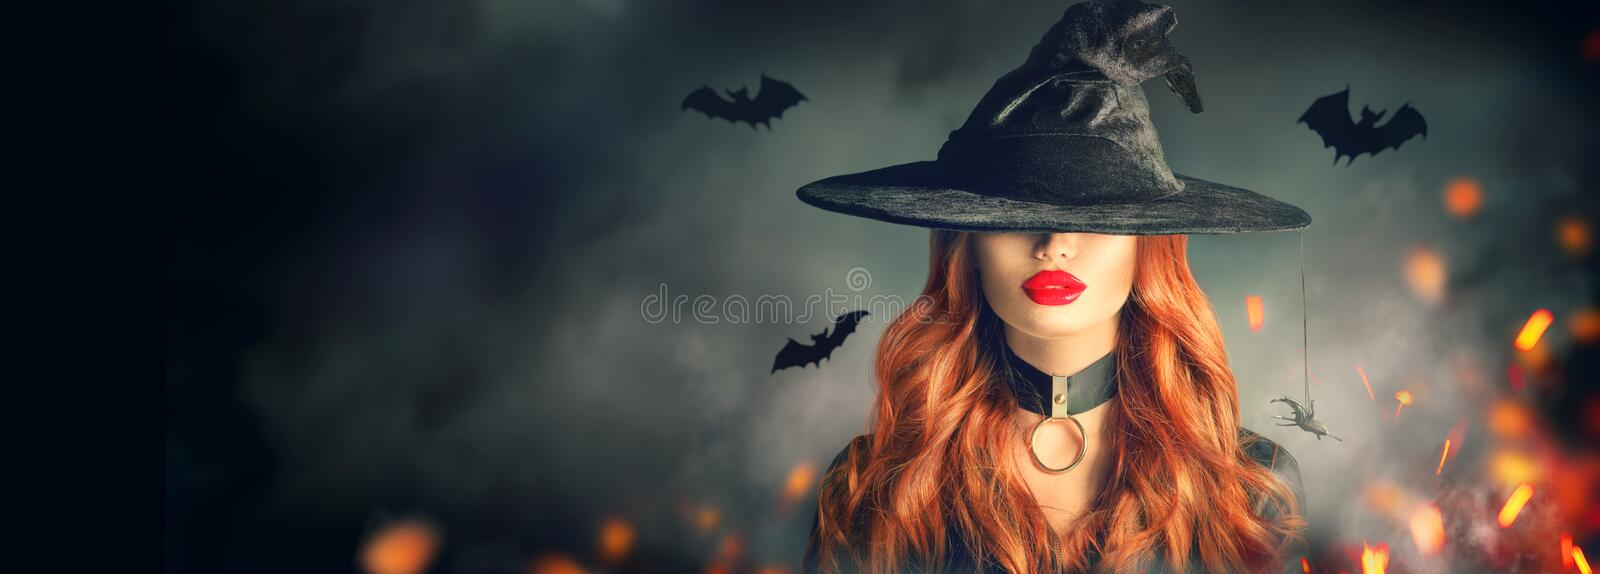 Halloween. witch portrait. Beautiful young woman in witches hat with long curly red hair over spooky dark magic forest royalty free stock photo